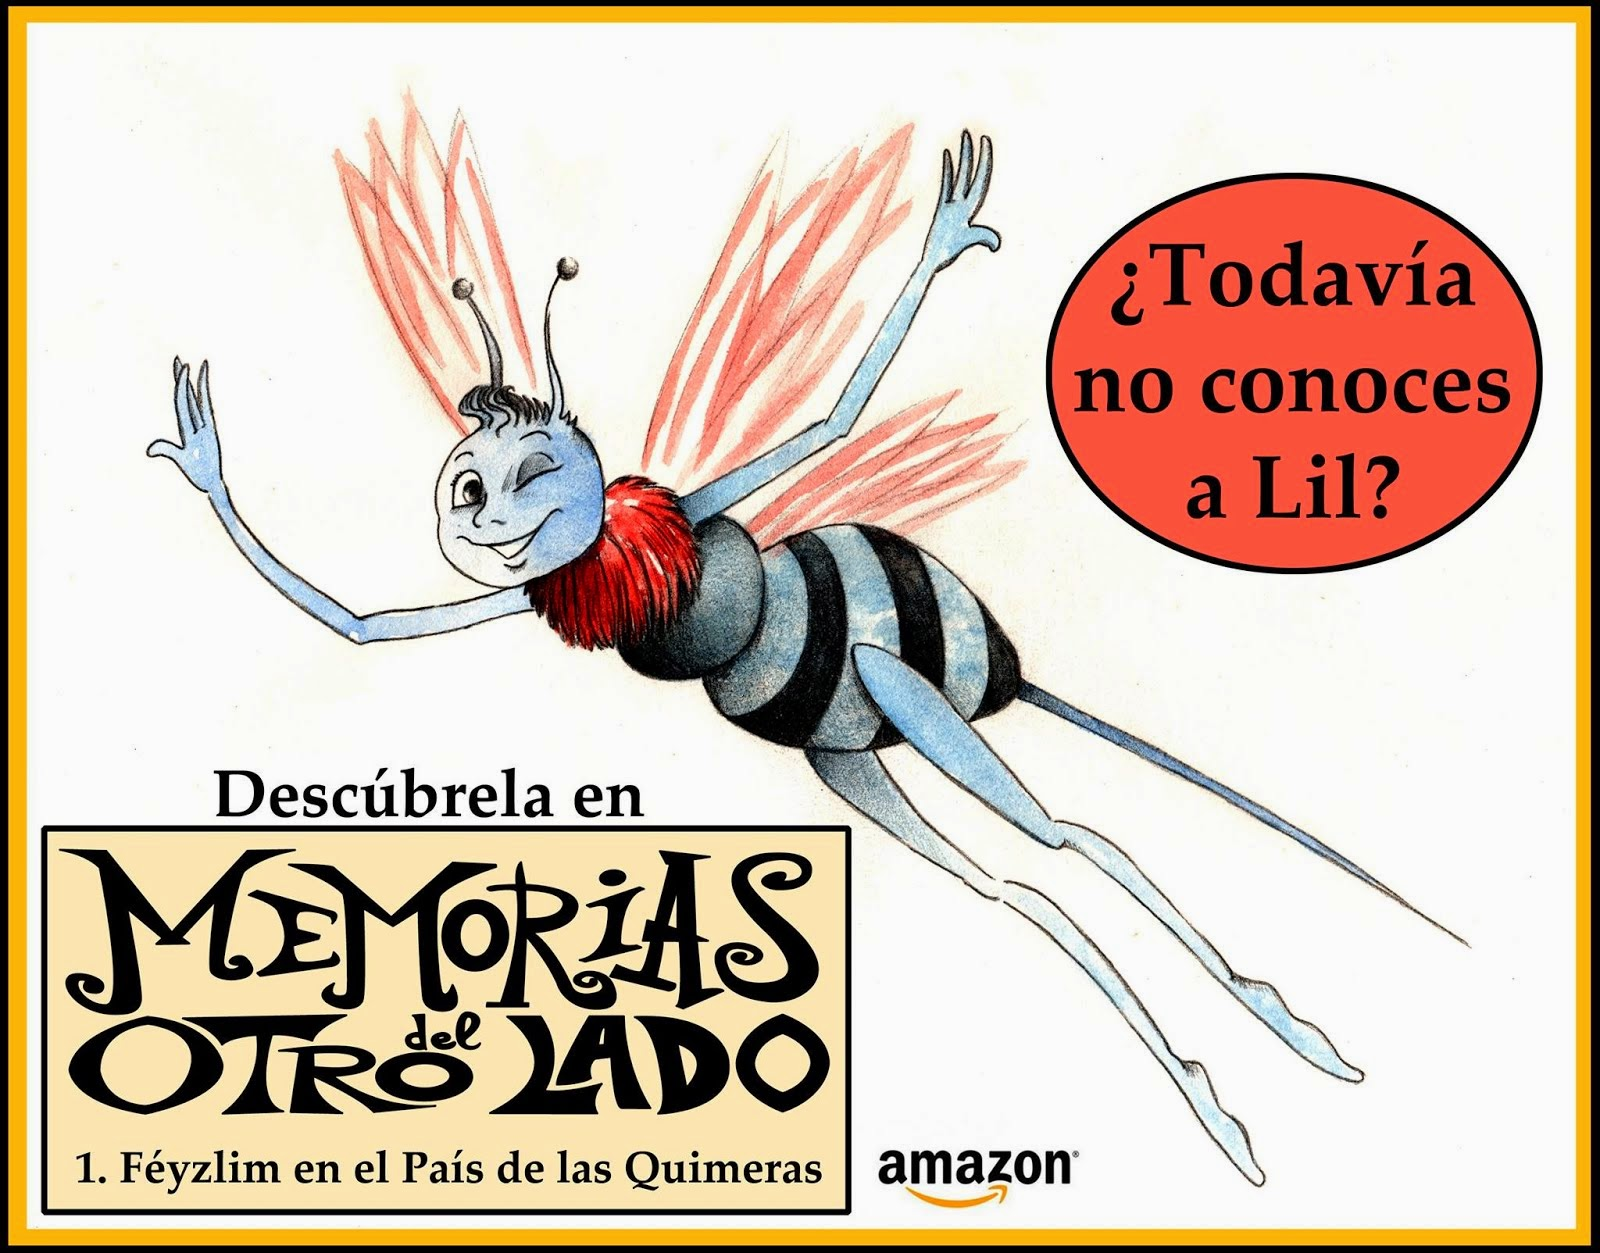 Disponible en Amazon